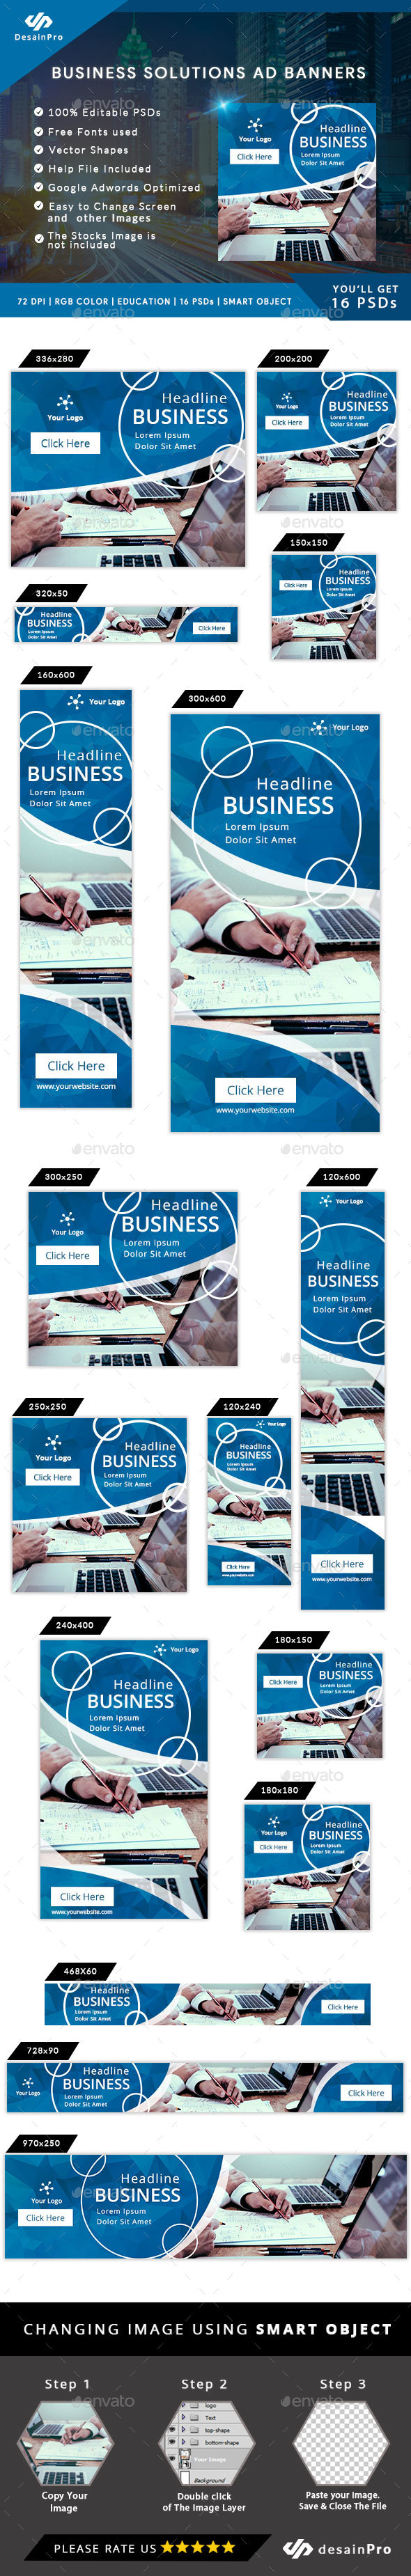 Multipurpose Ad Banners Template - AR - Banners & Ads Web Elements